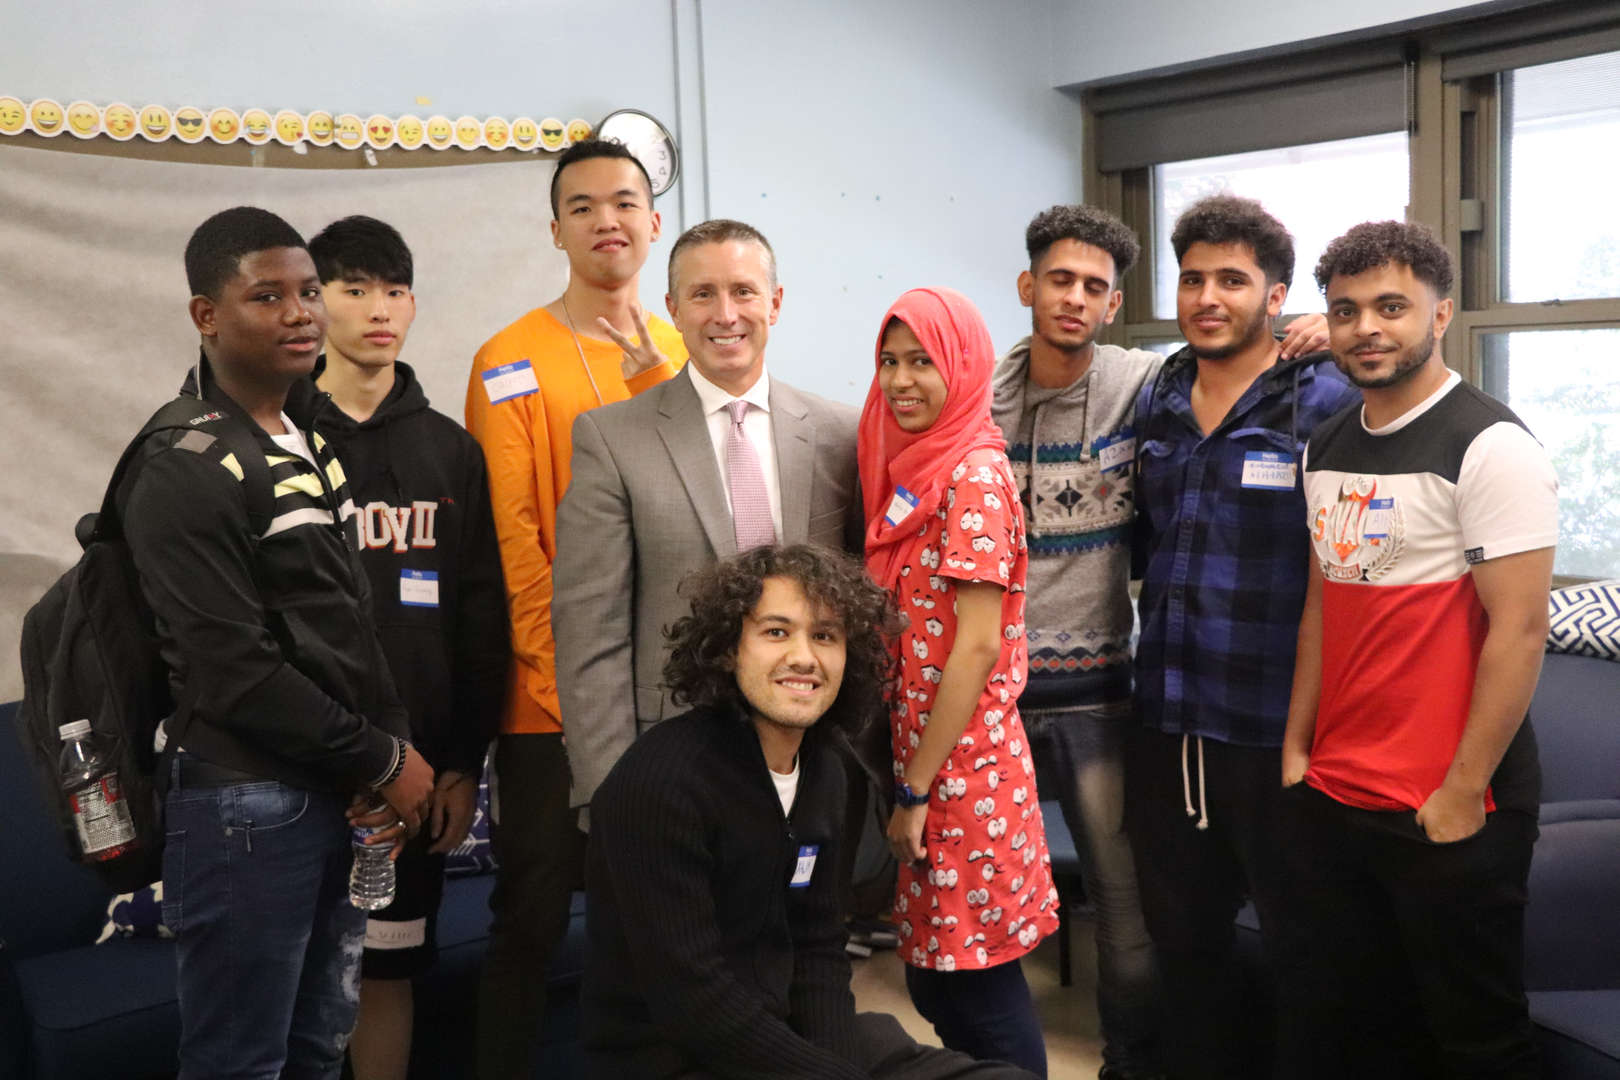 Mr. Heckethorn poses with students